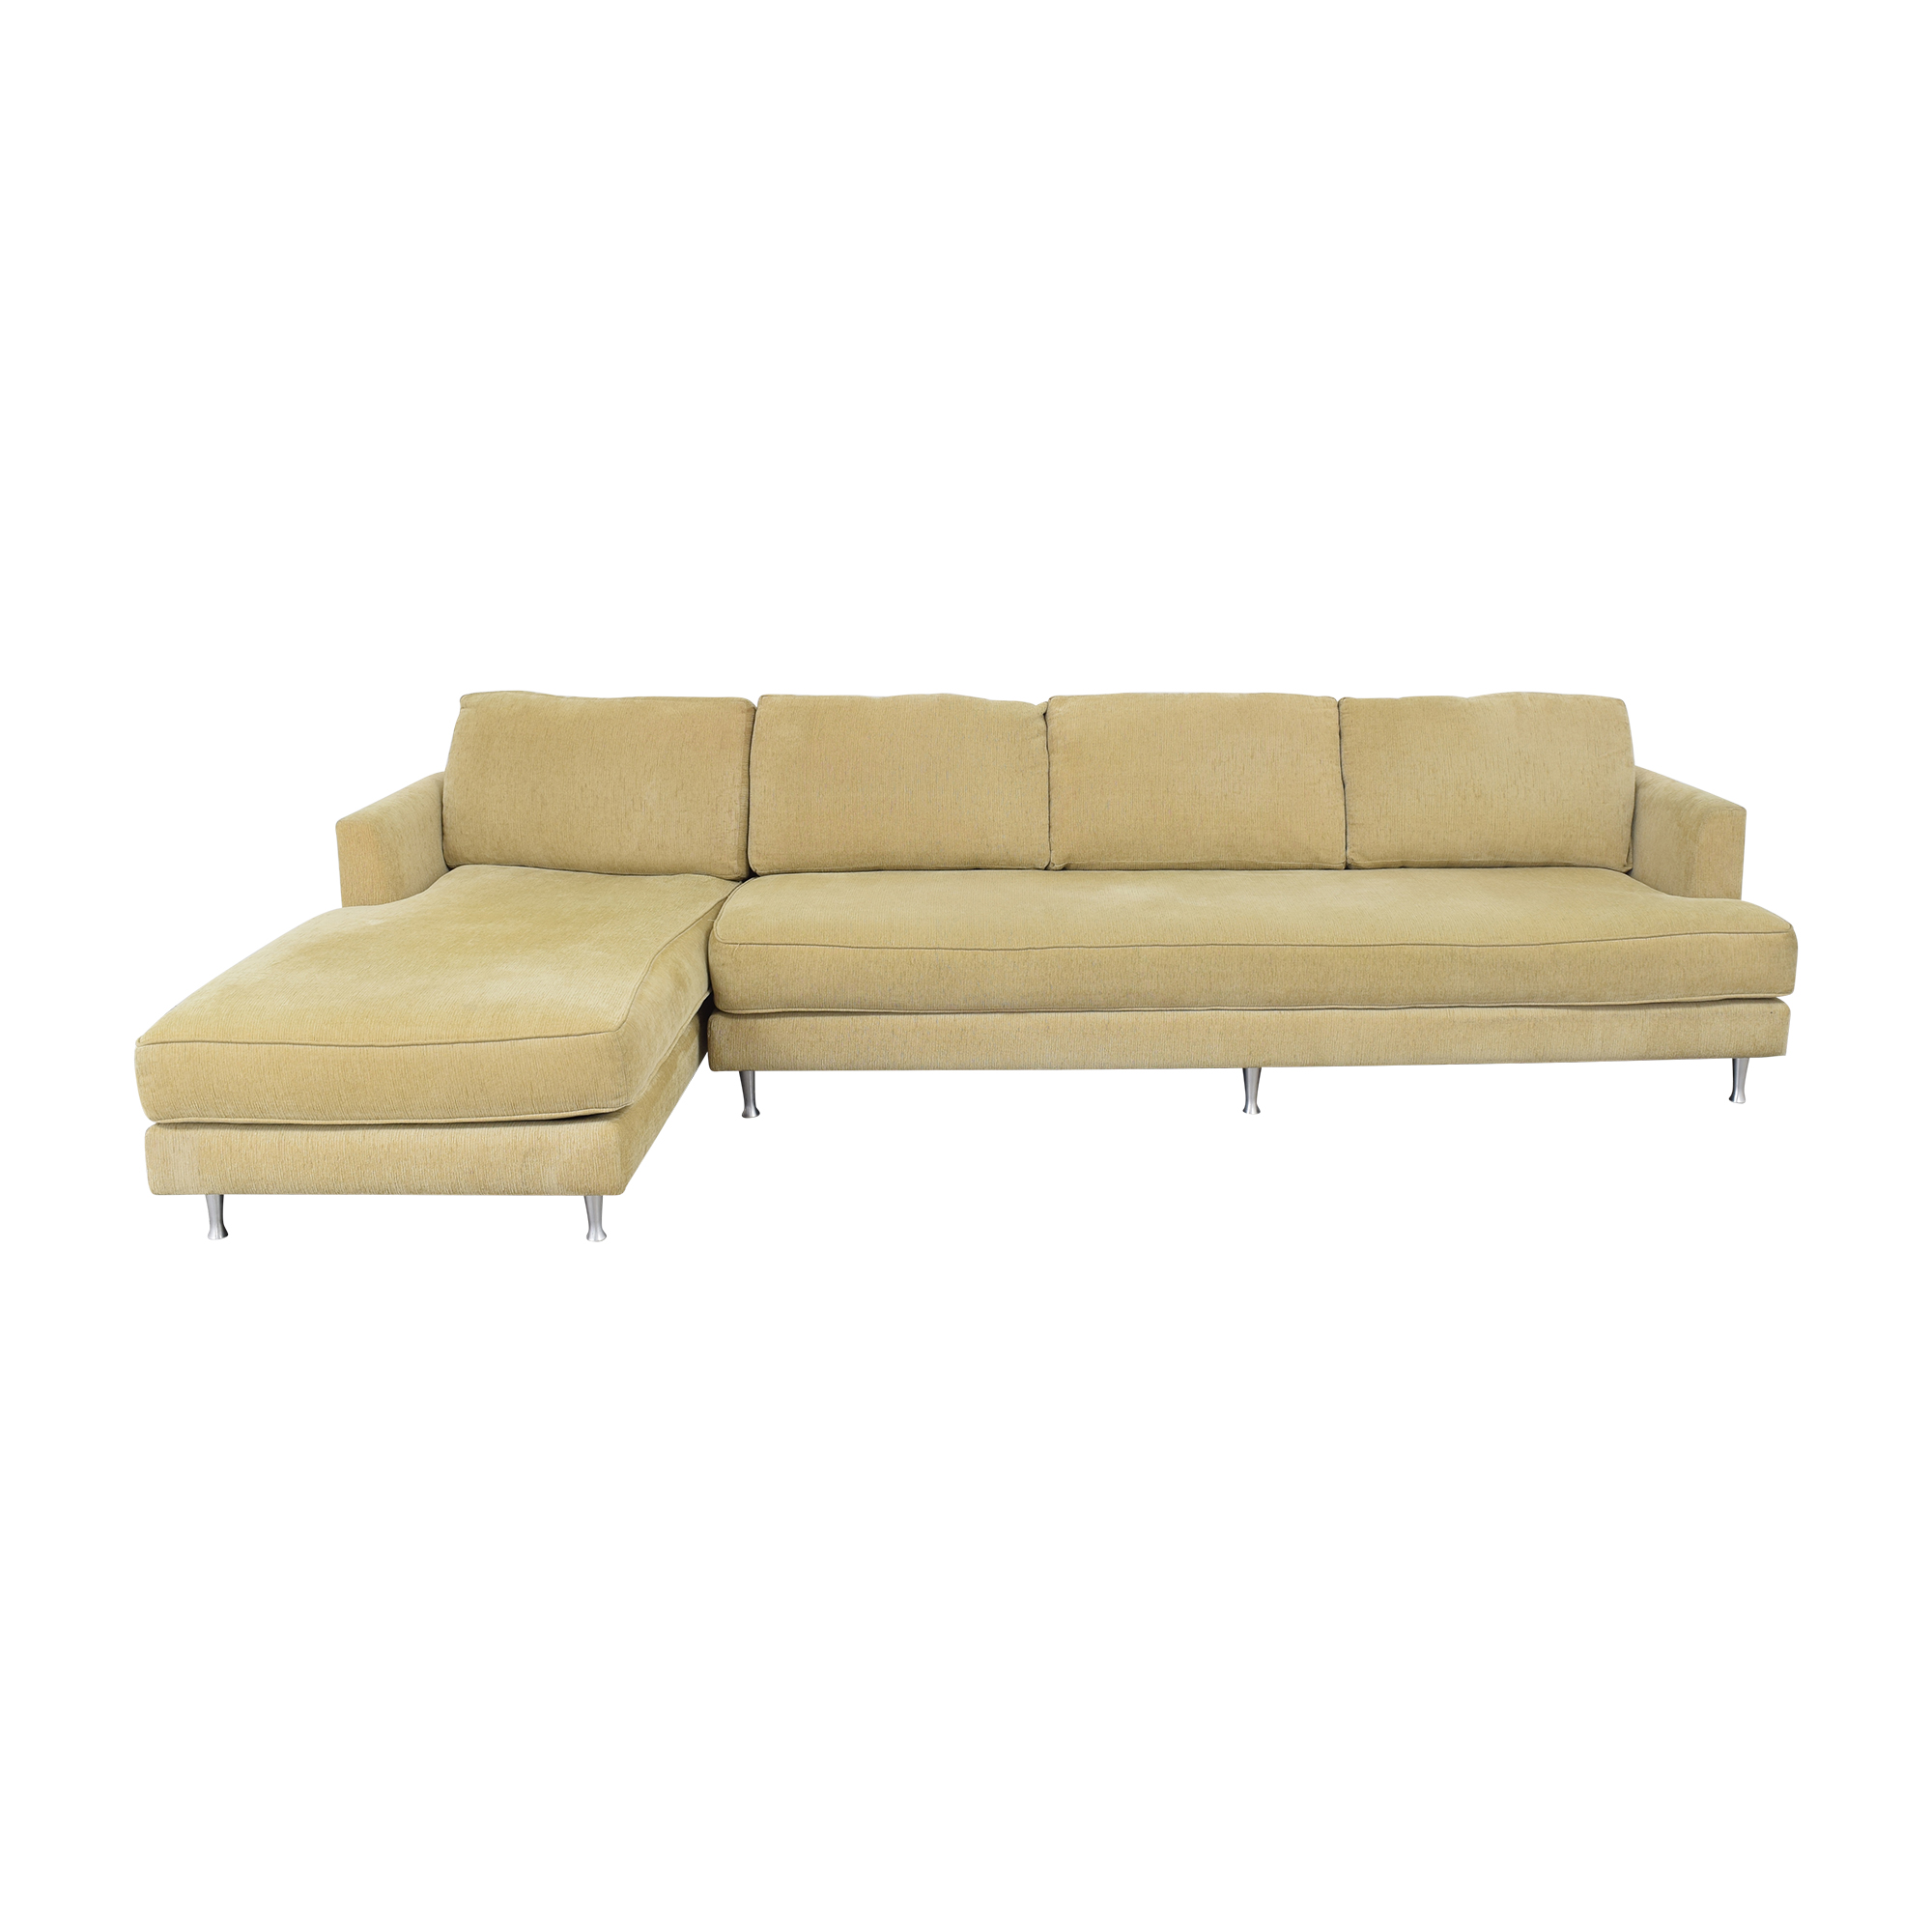 Carter Furniture Carter Furniture Sectional Sofa with Chaise pa